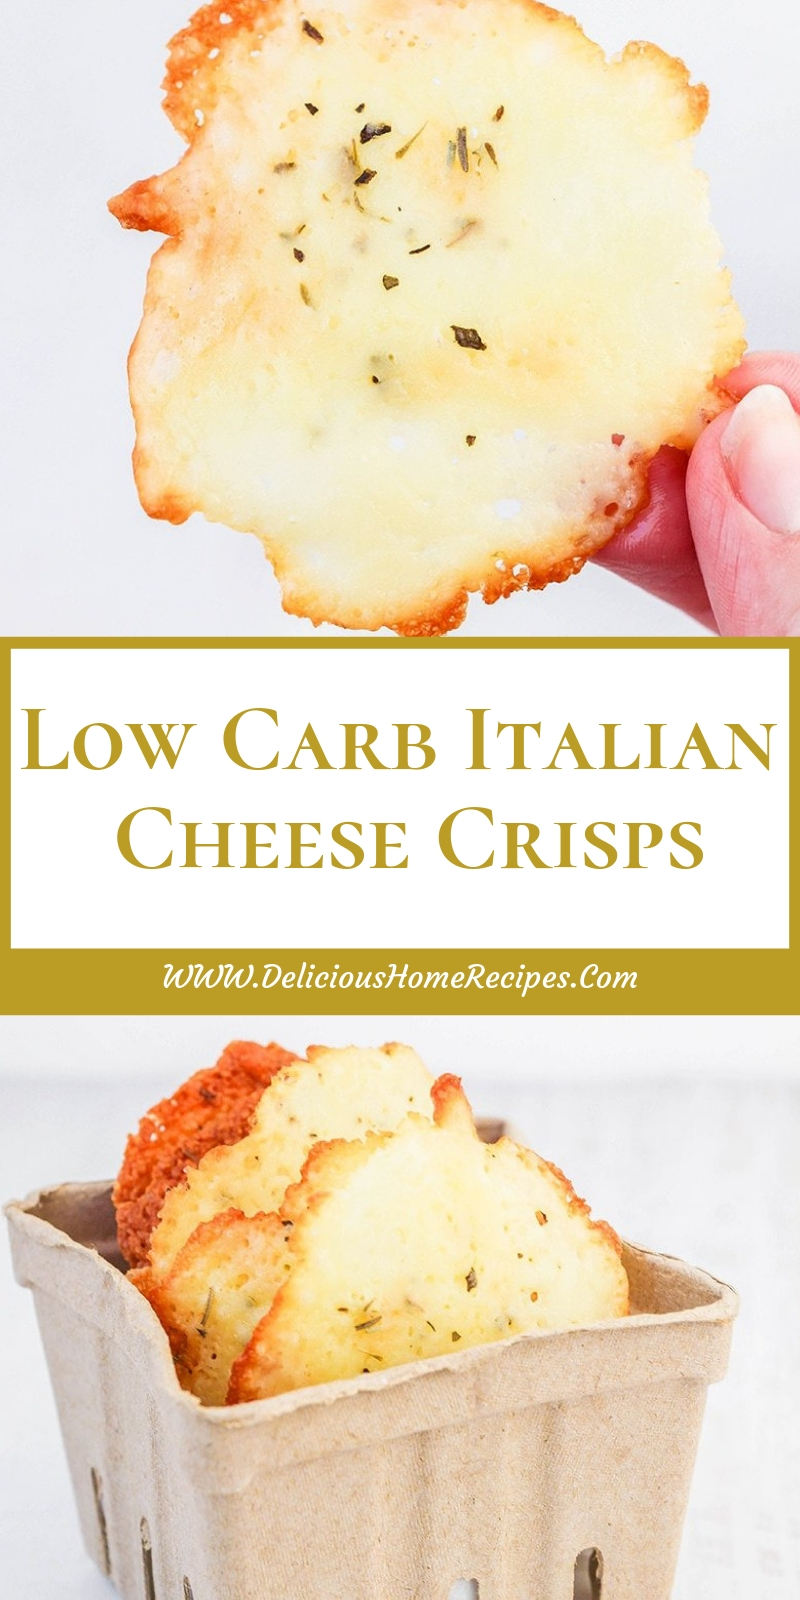 Low Carb Italian Cheese Crisps